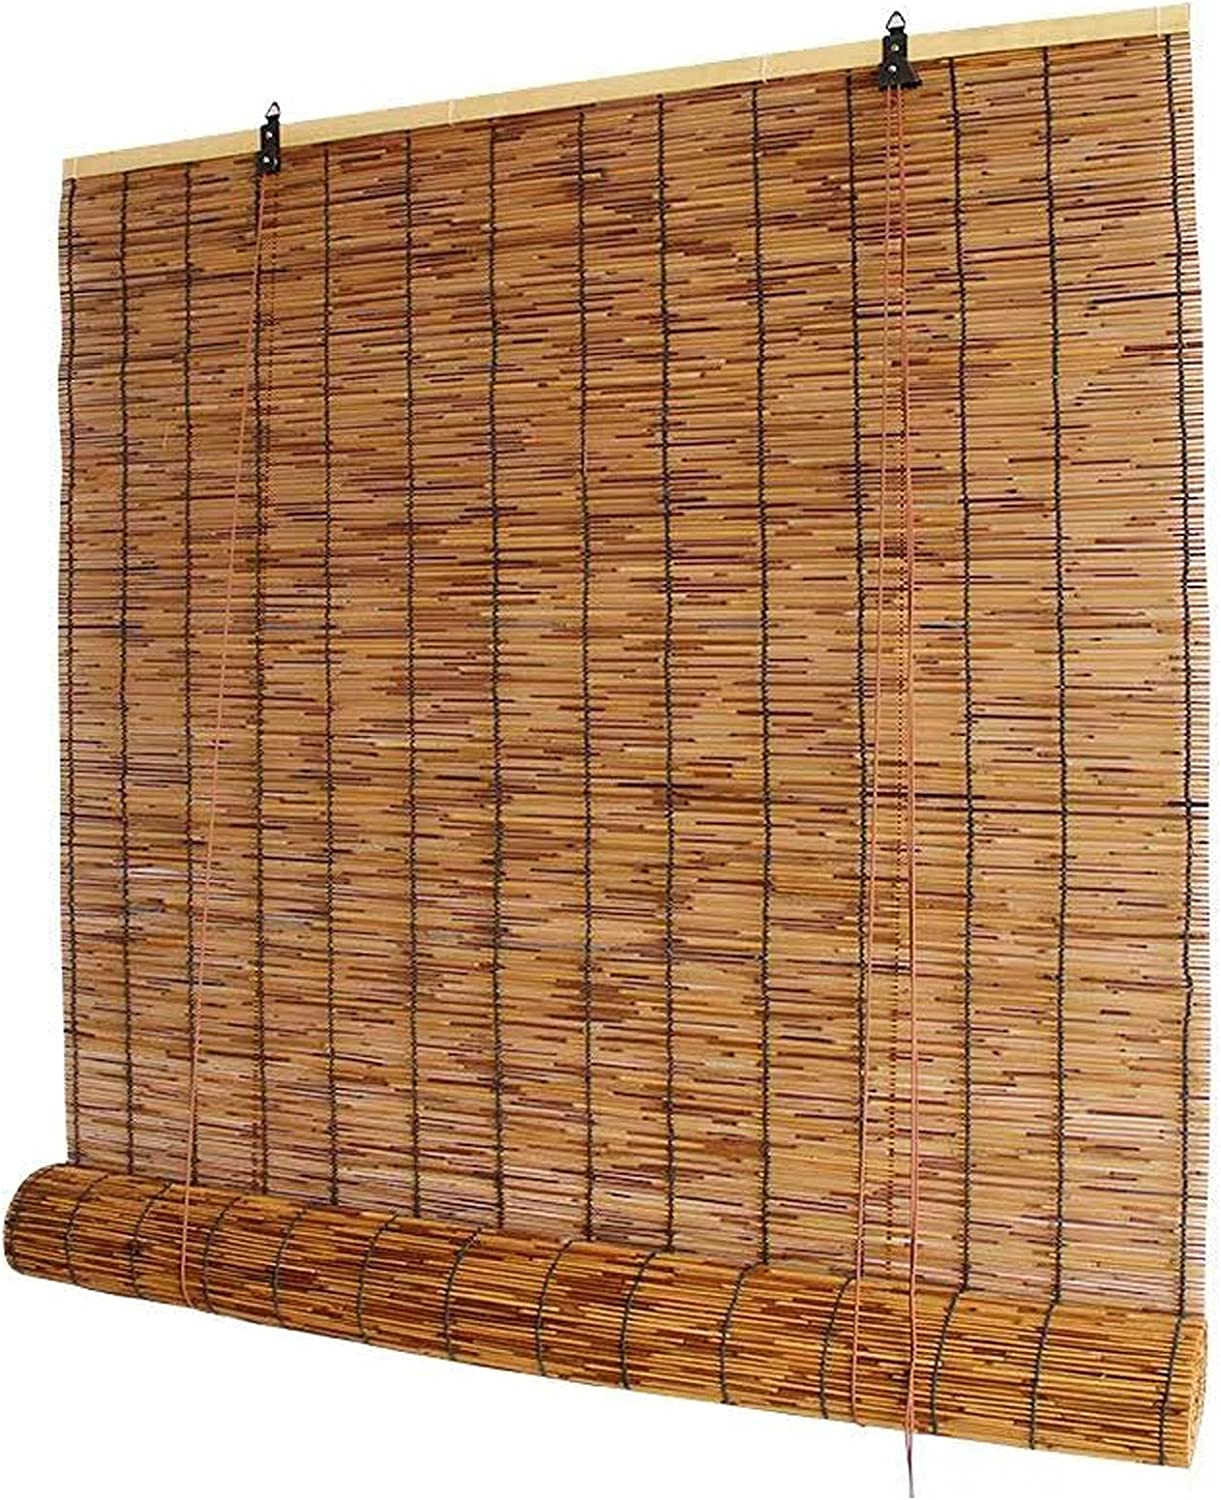 tow000ack Carbonized Natural Reed Curtain Roman Lo Minneapolis Mall Dealing full price reduction Blinds Roller